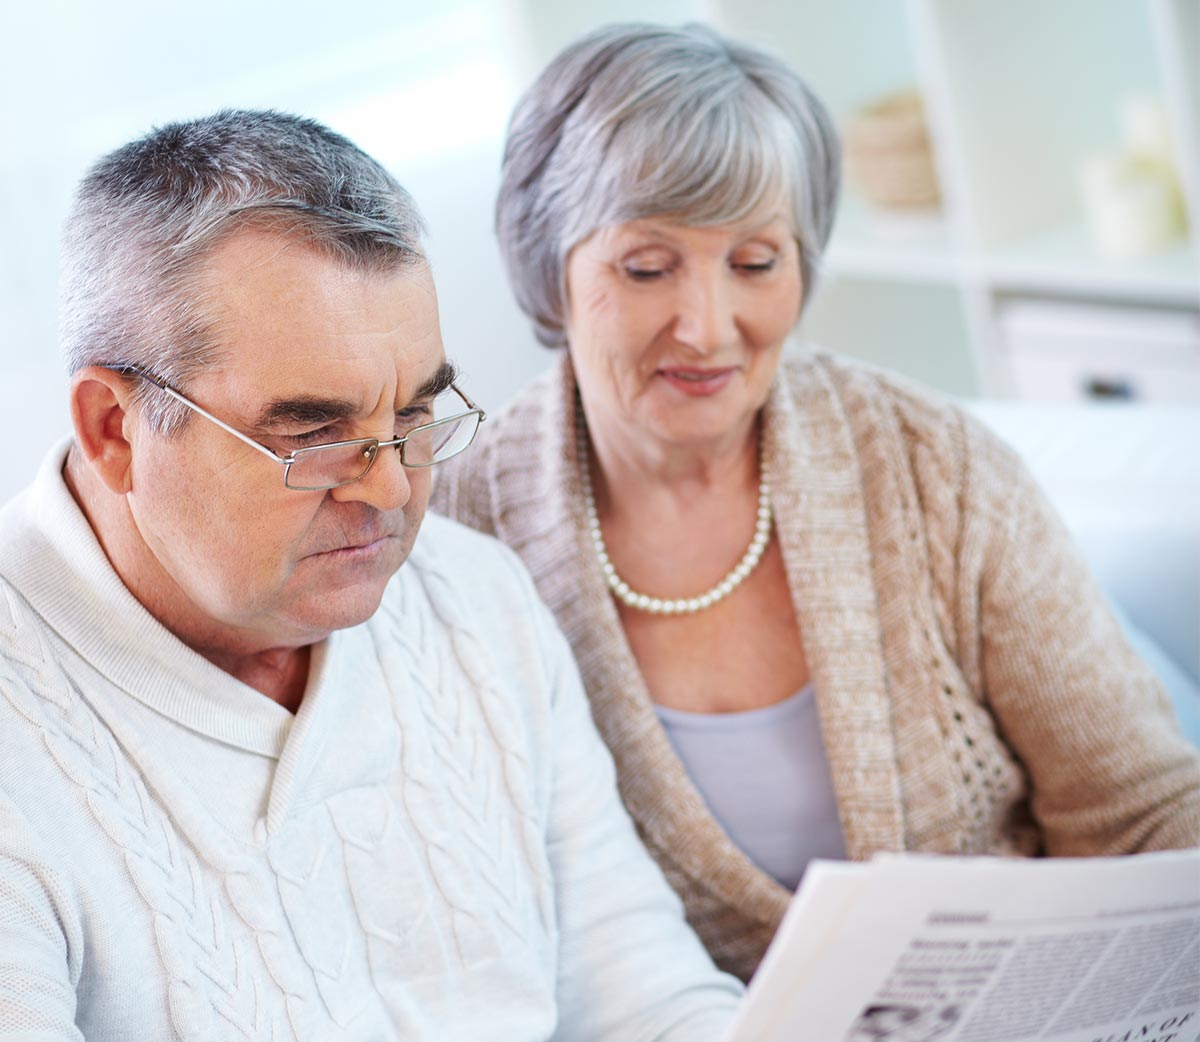 Savers over 55 cite falling interest rates as a major concern